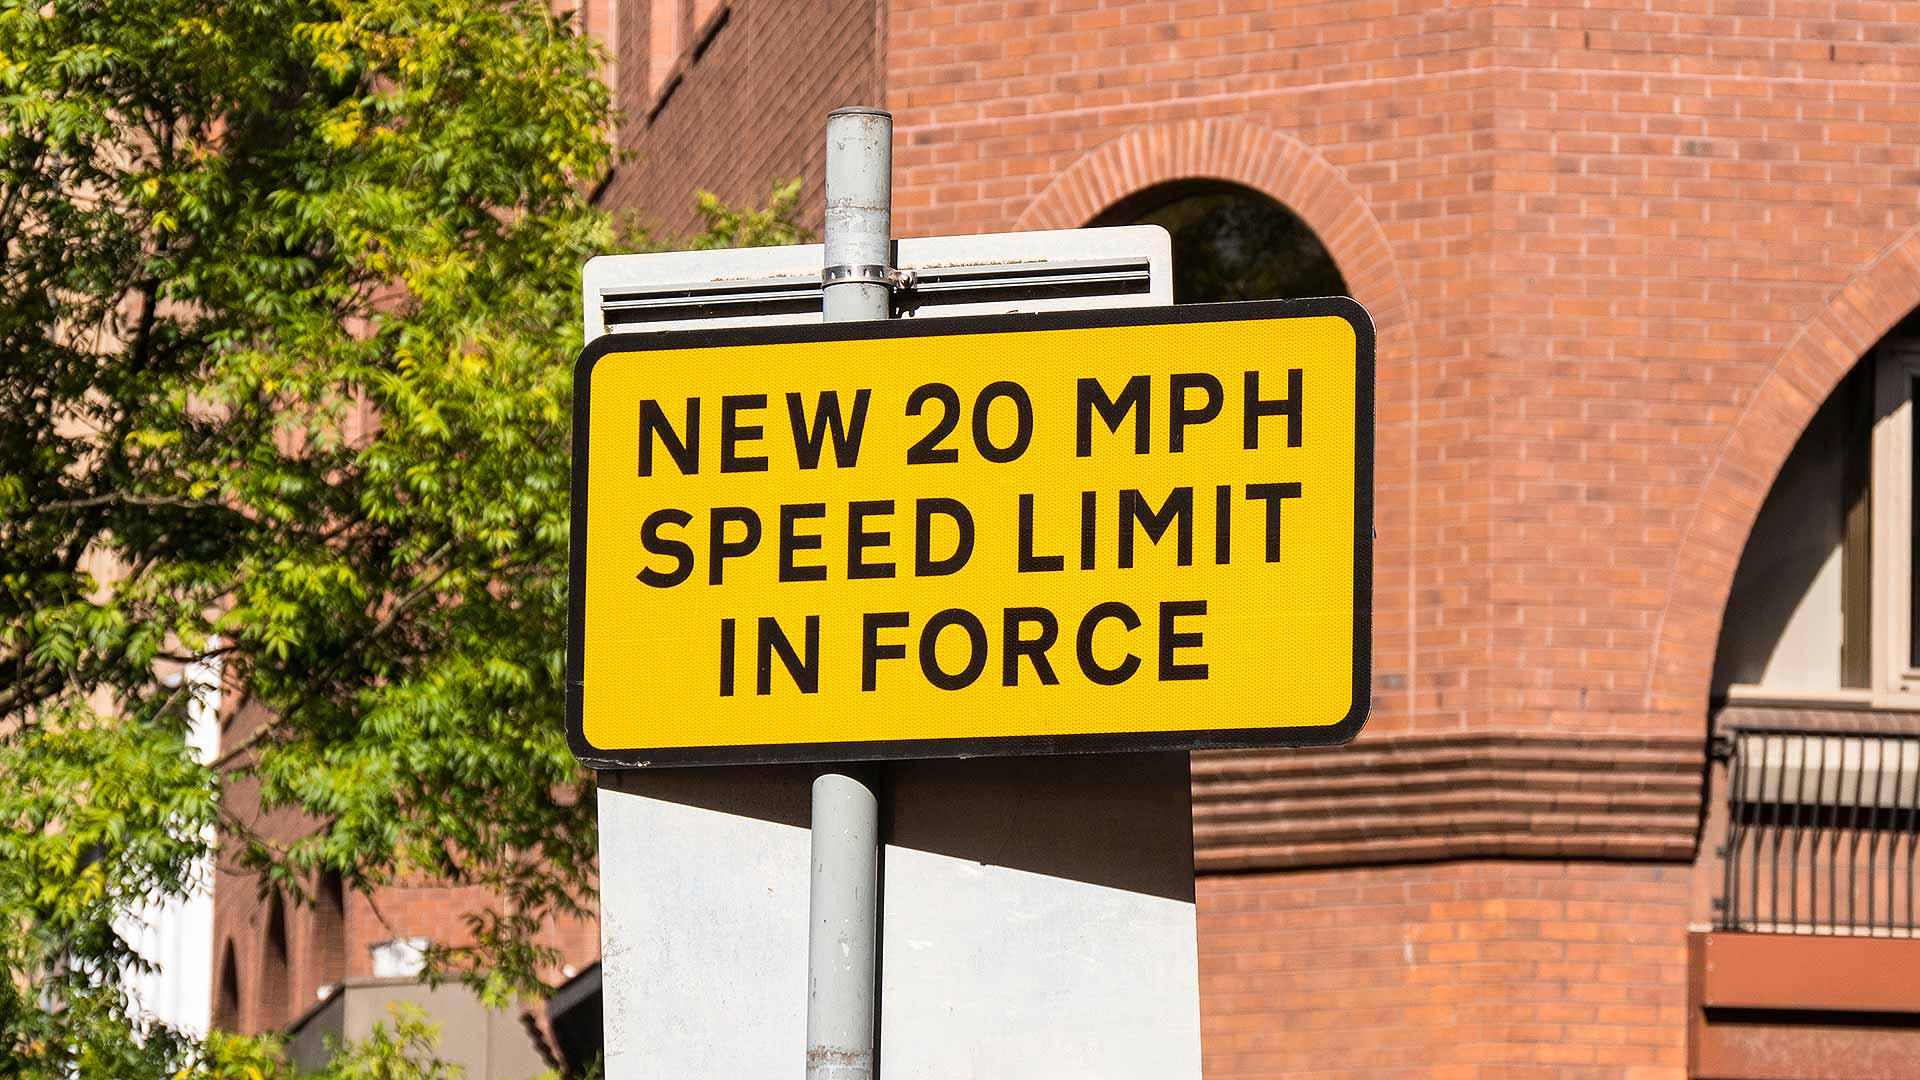 New 20mph speed limit in force road sign